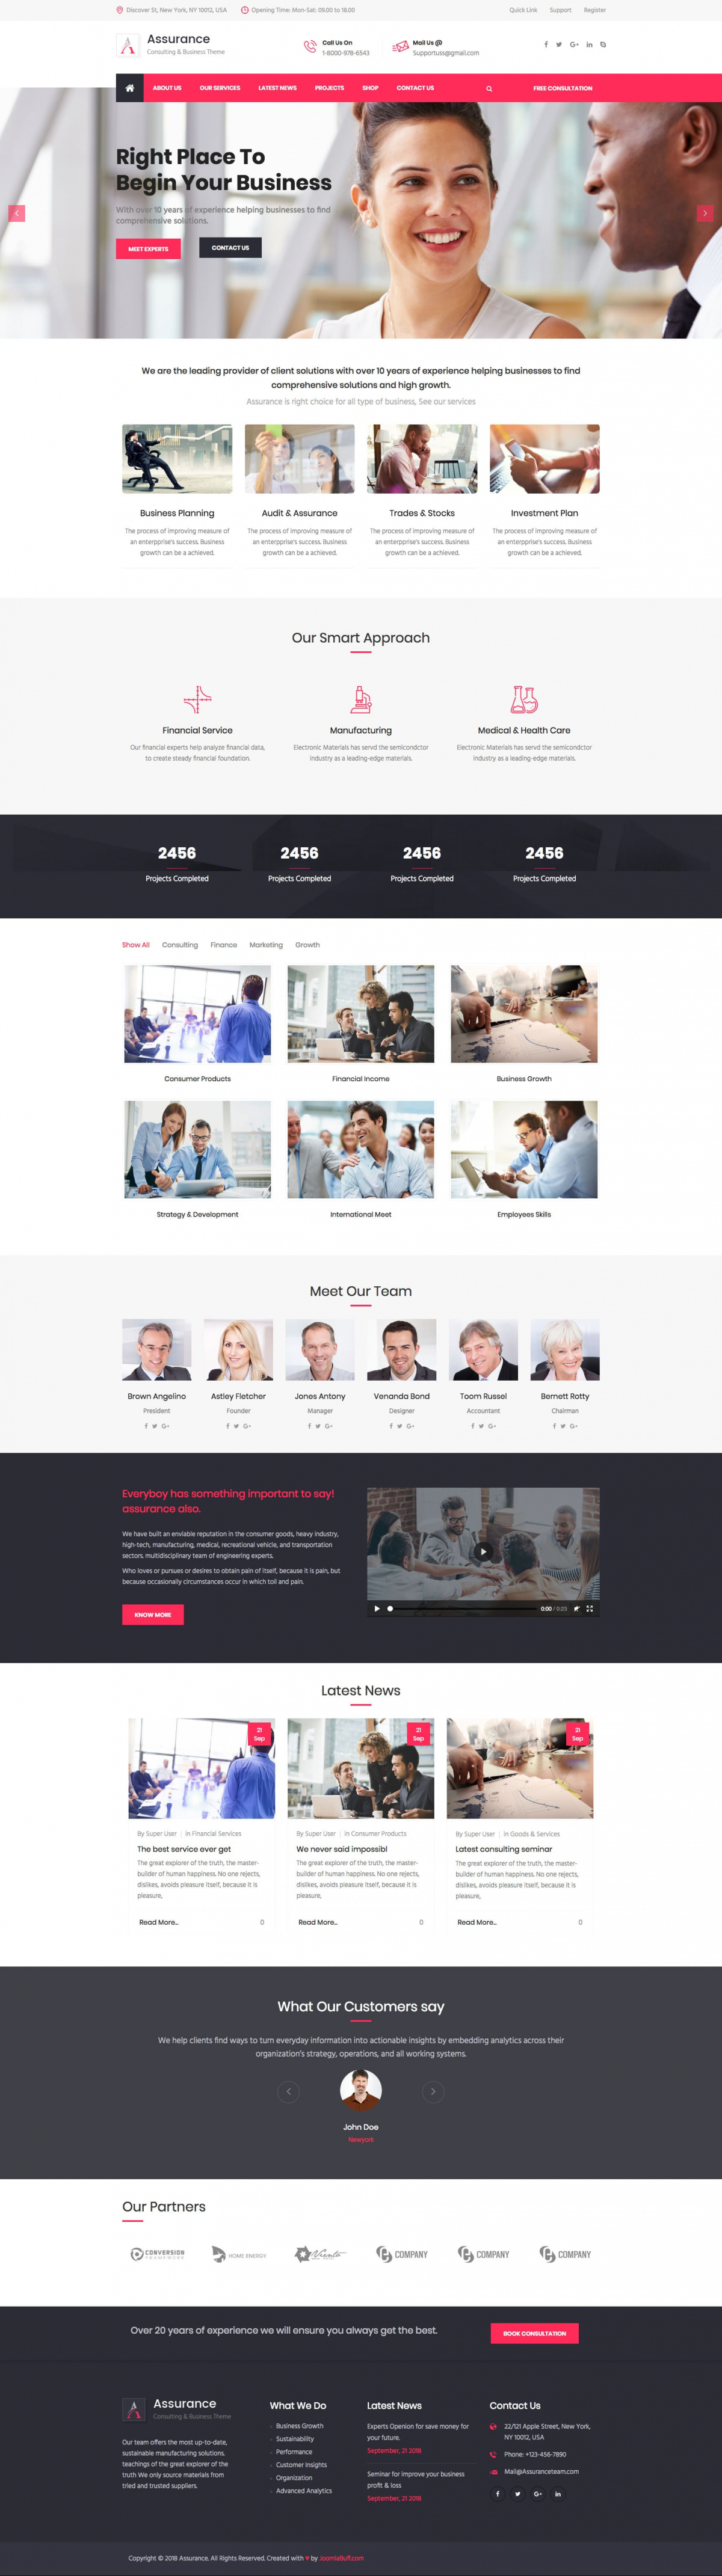 Assurance - Finance & Business Consulting Joomla Template